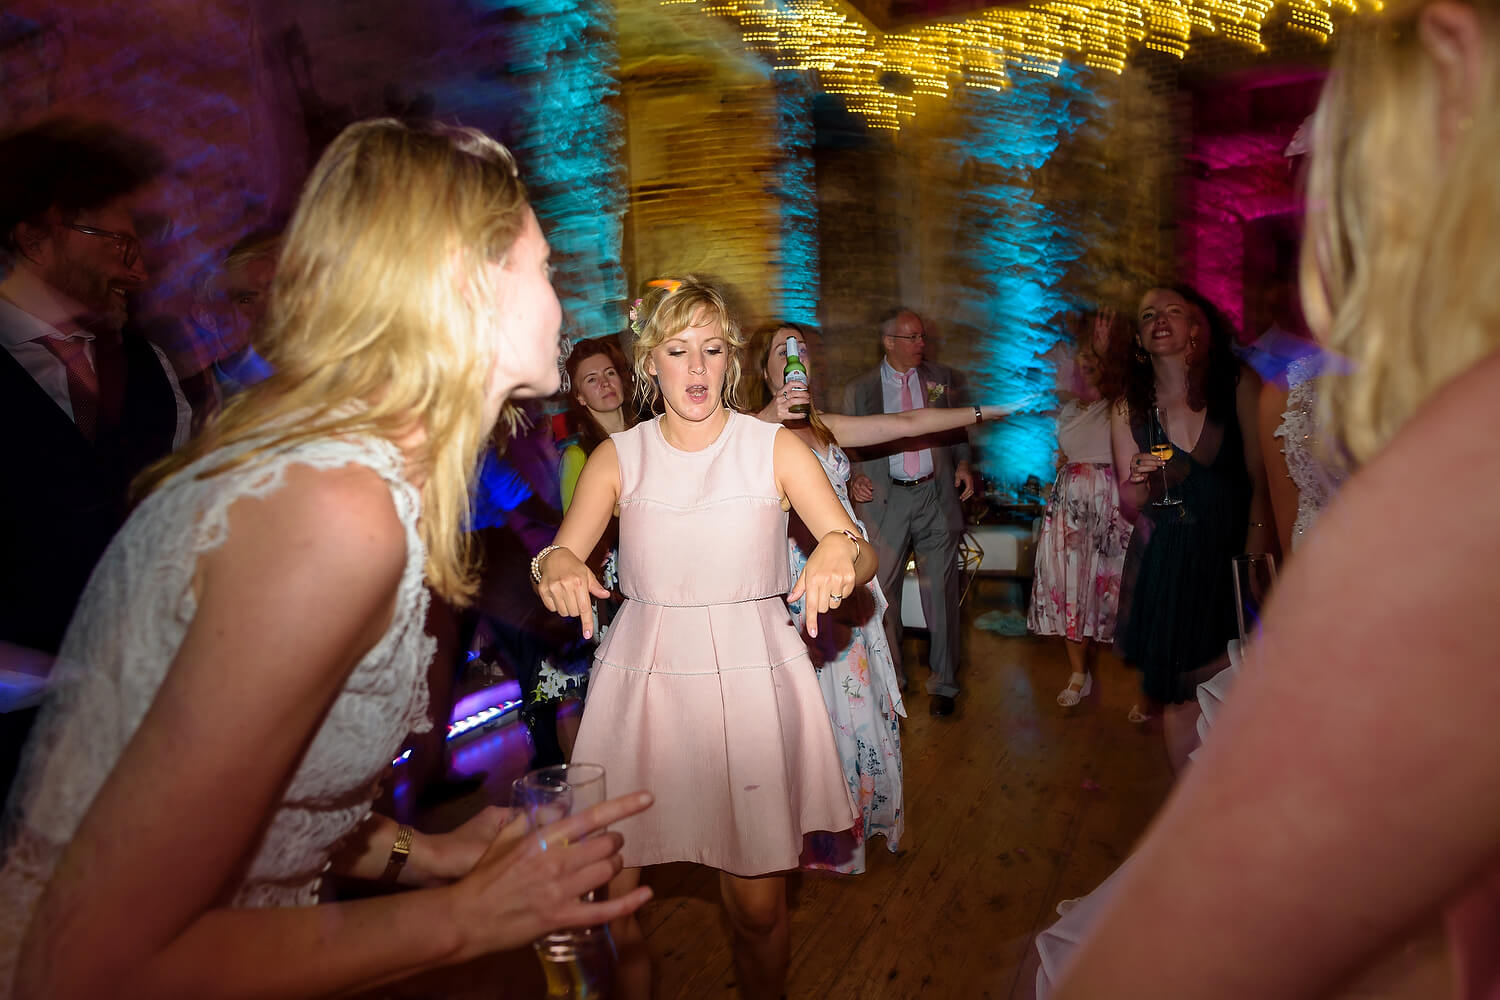 dancefloor at wedding